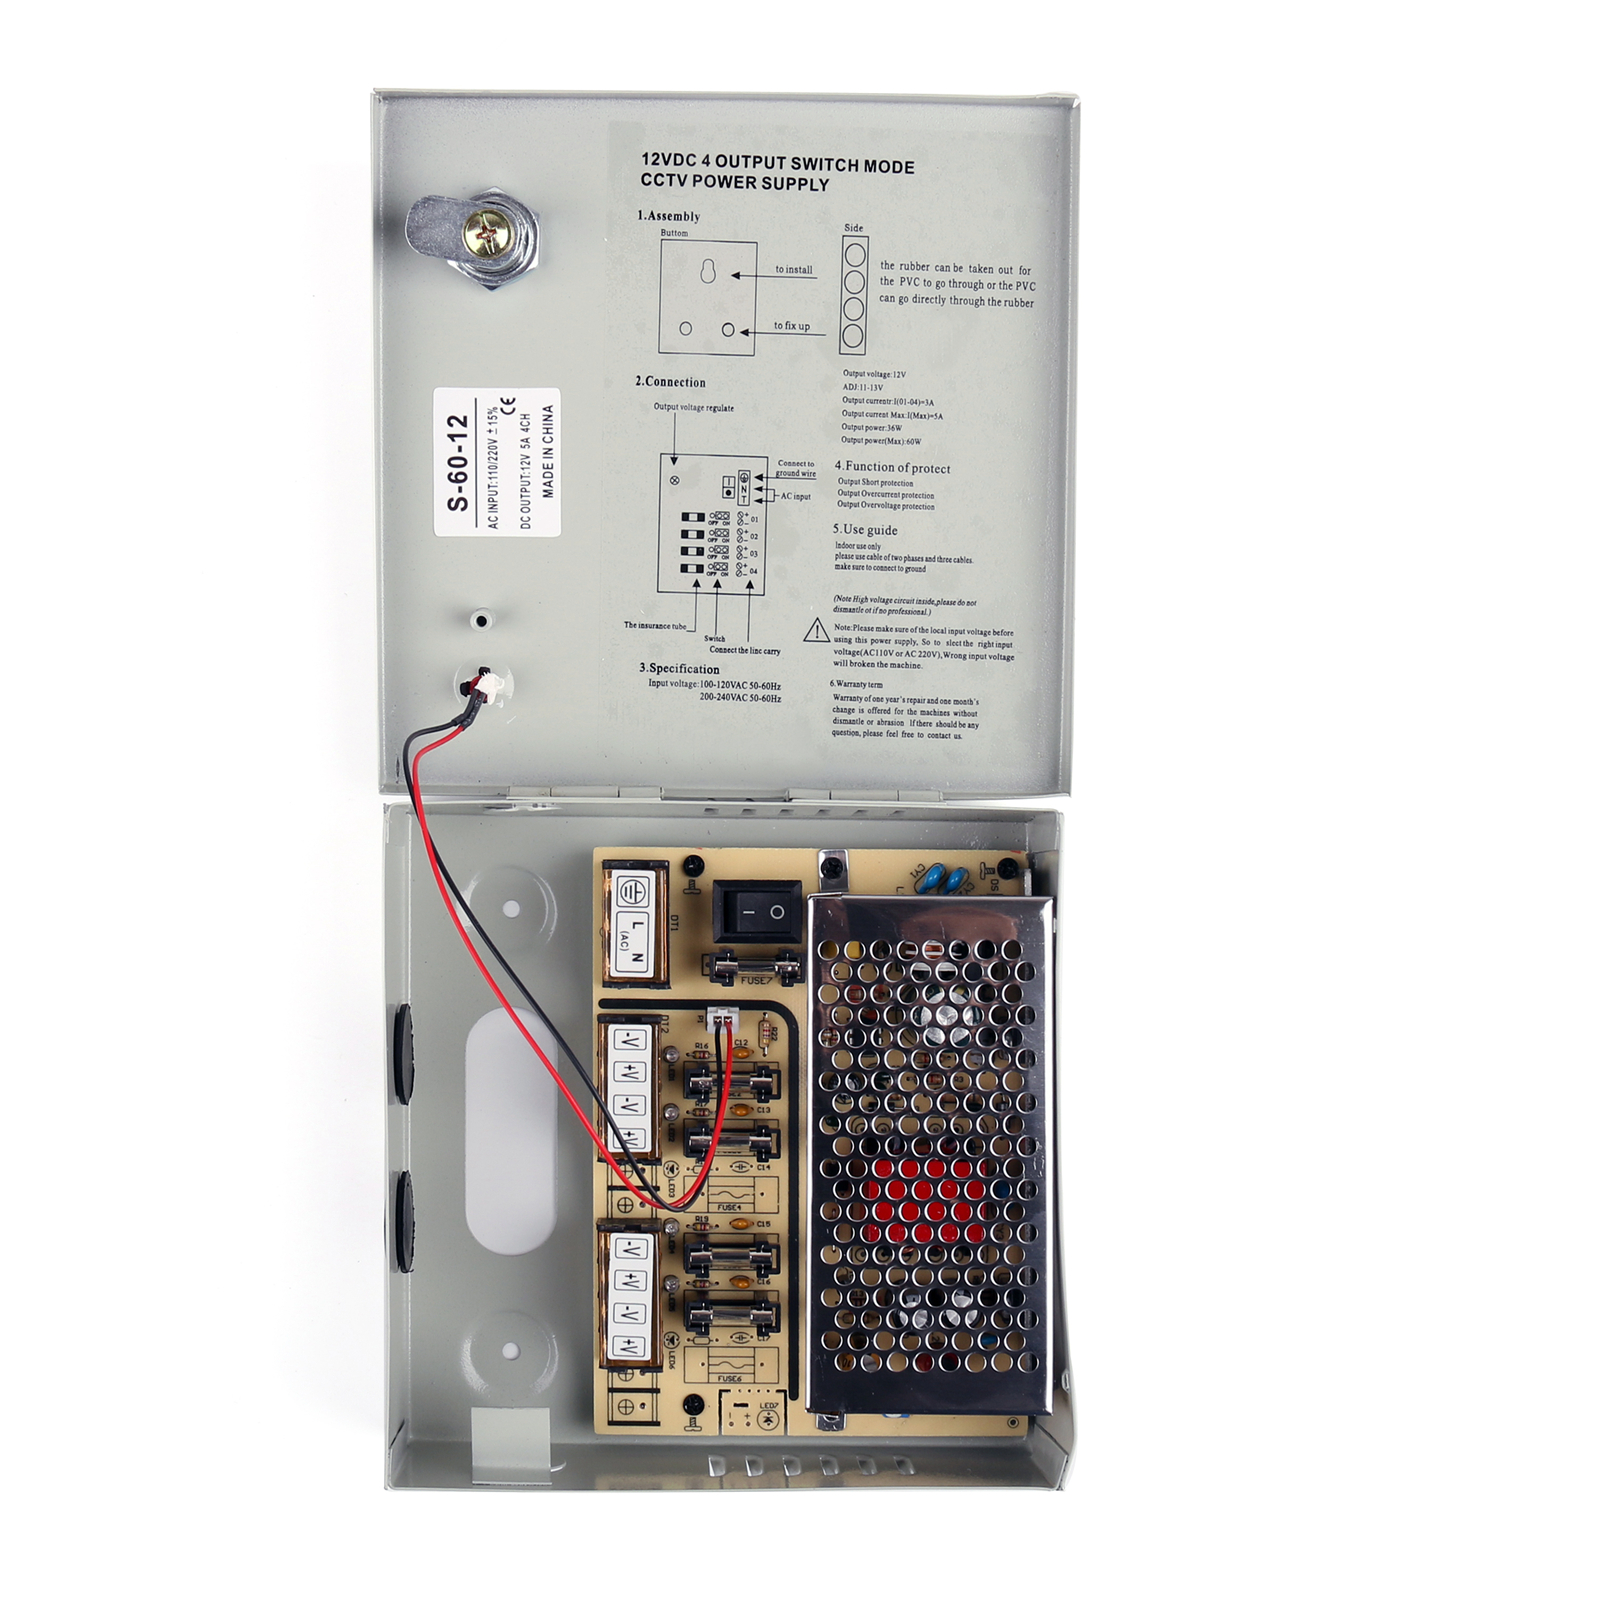 1x 4ch Channel Power Supply Box For Cctv Camera Security Switchmode Psu Protection Circuit Type 4 12v 5a 2 Output Voltage Dc 5 3 Current 01 045a Multiple Outputs